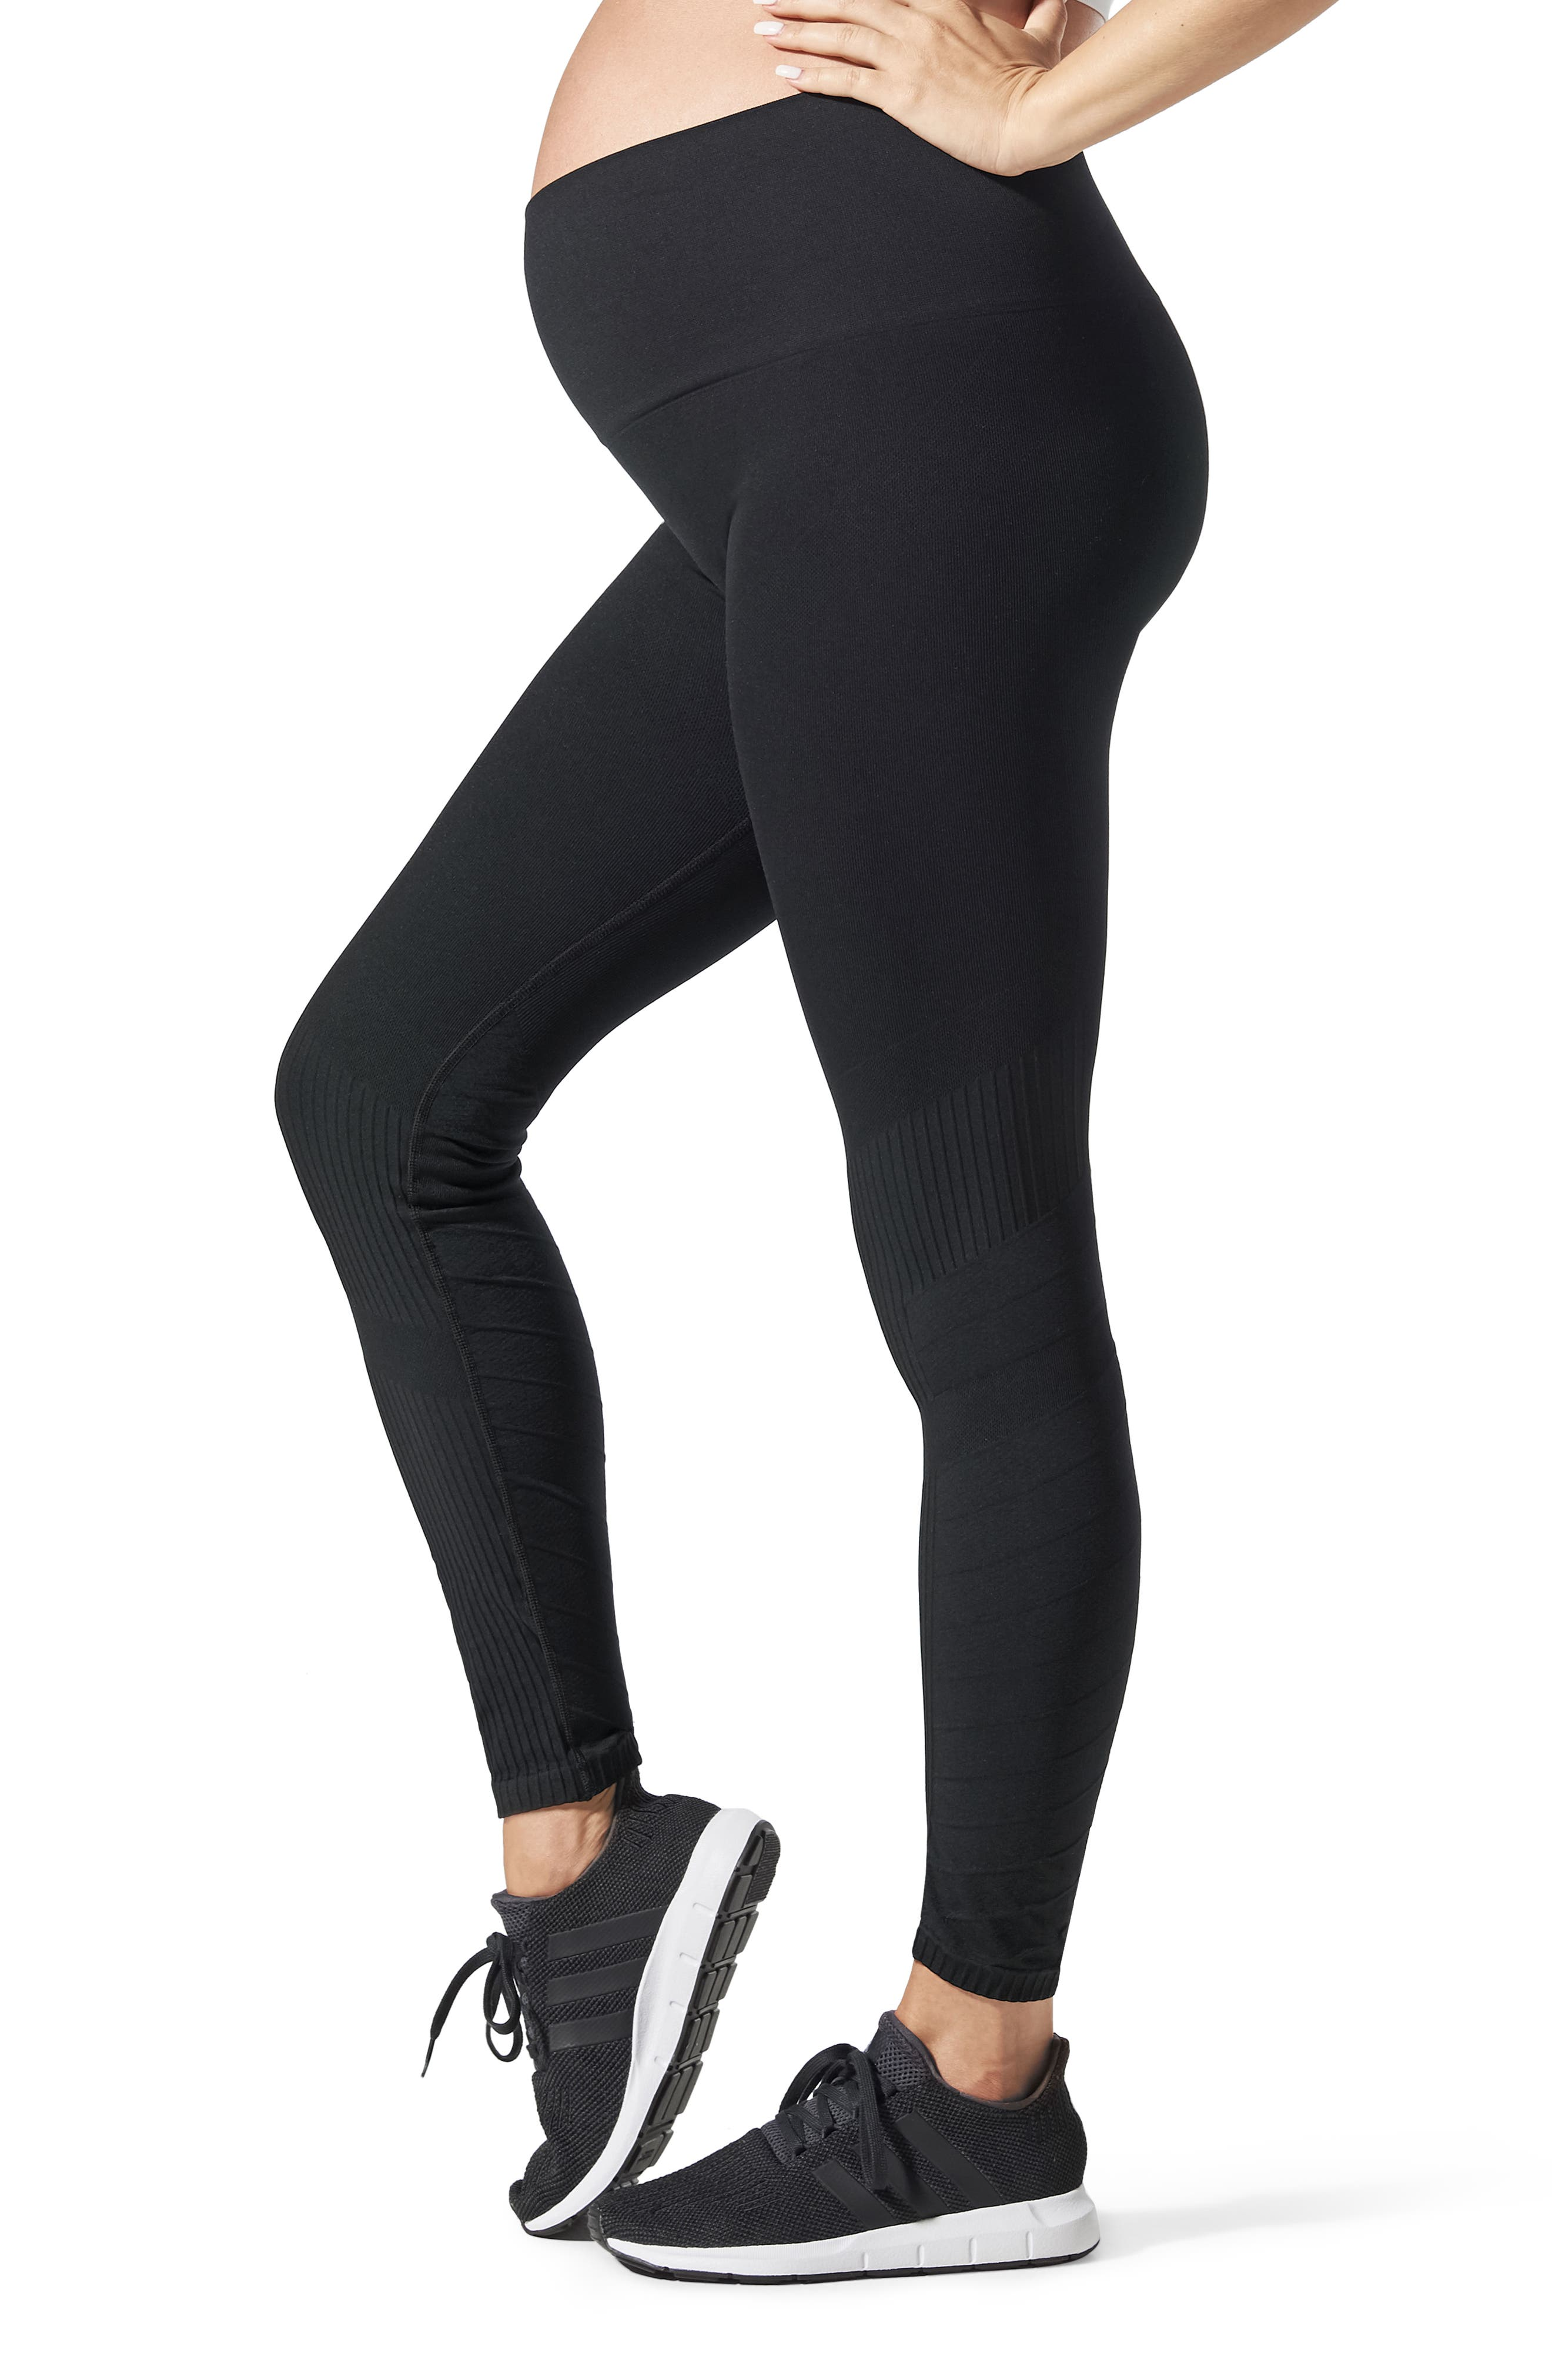 SportSupport<sup>®</sup> Hipster Contour Support Maternity/Postpartum Leggings,                             Main thumbnail 1, color,                             BLACK